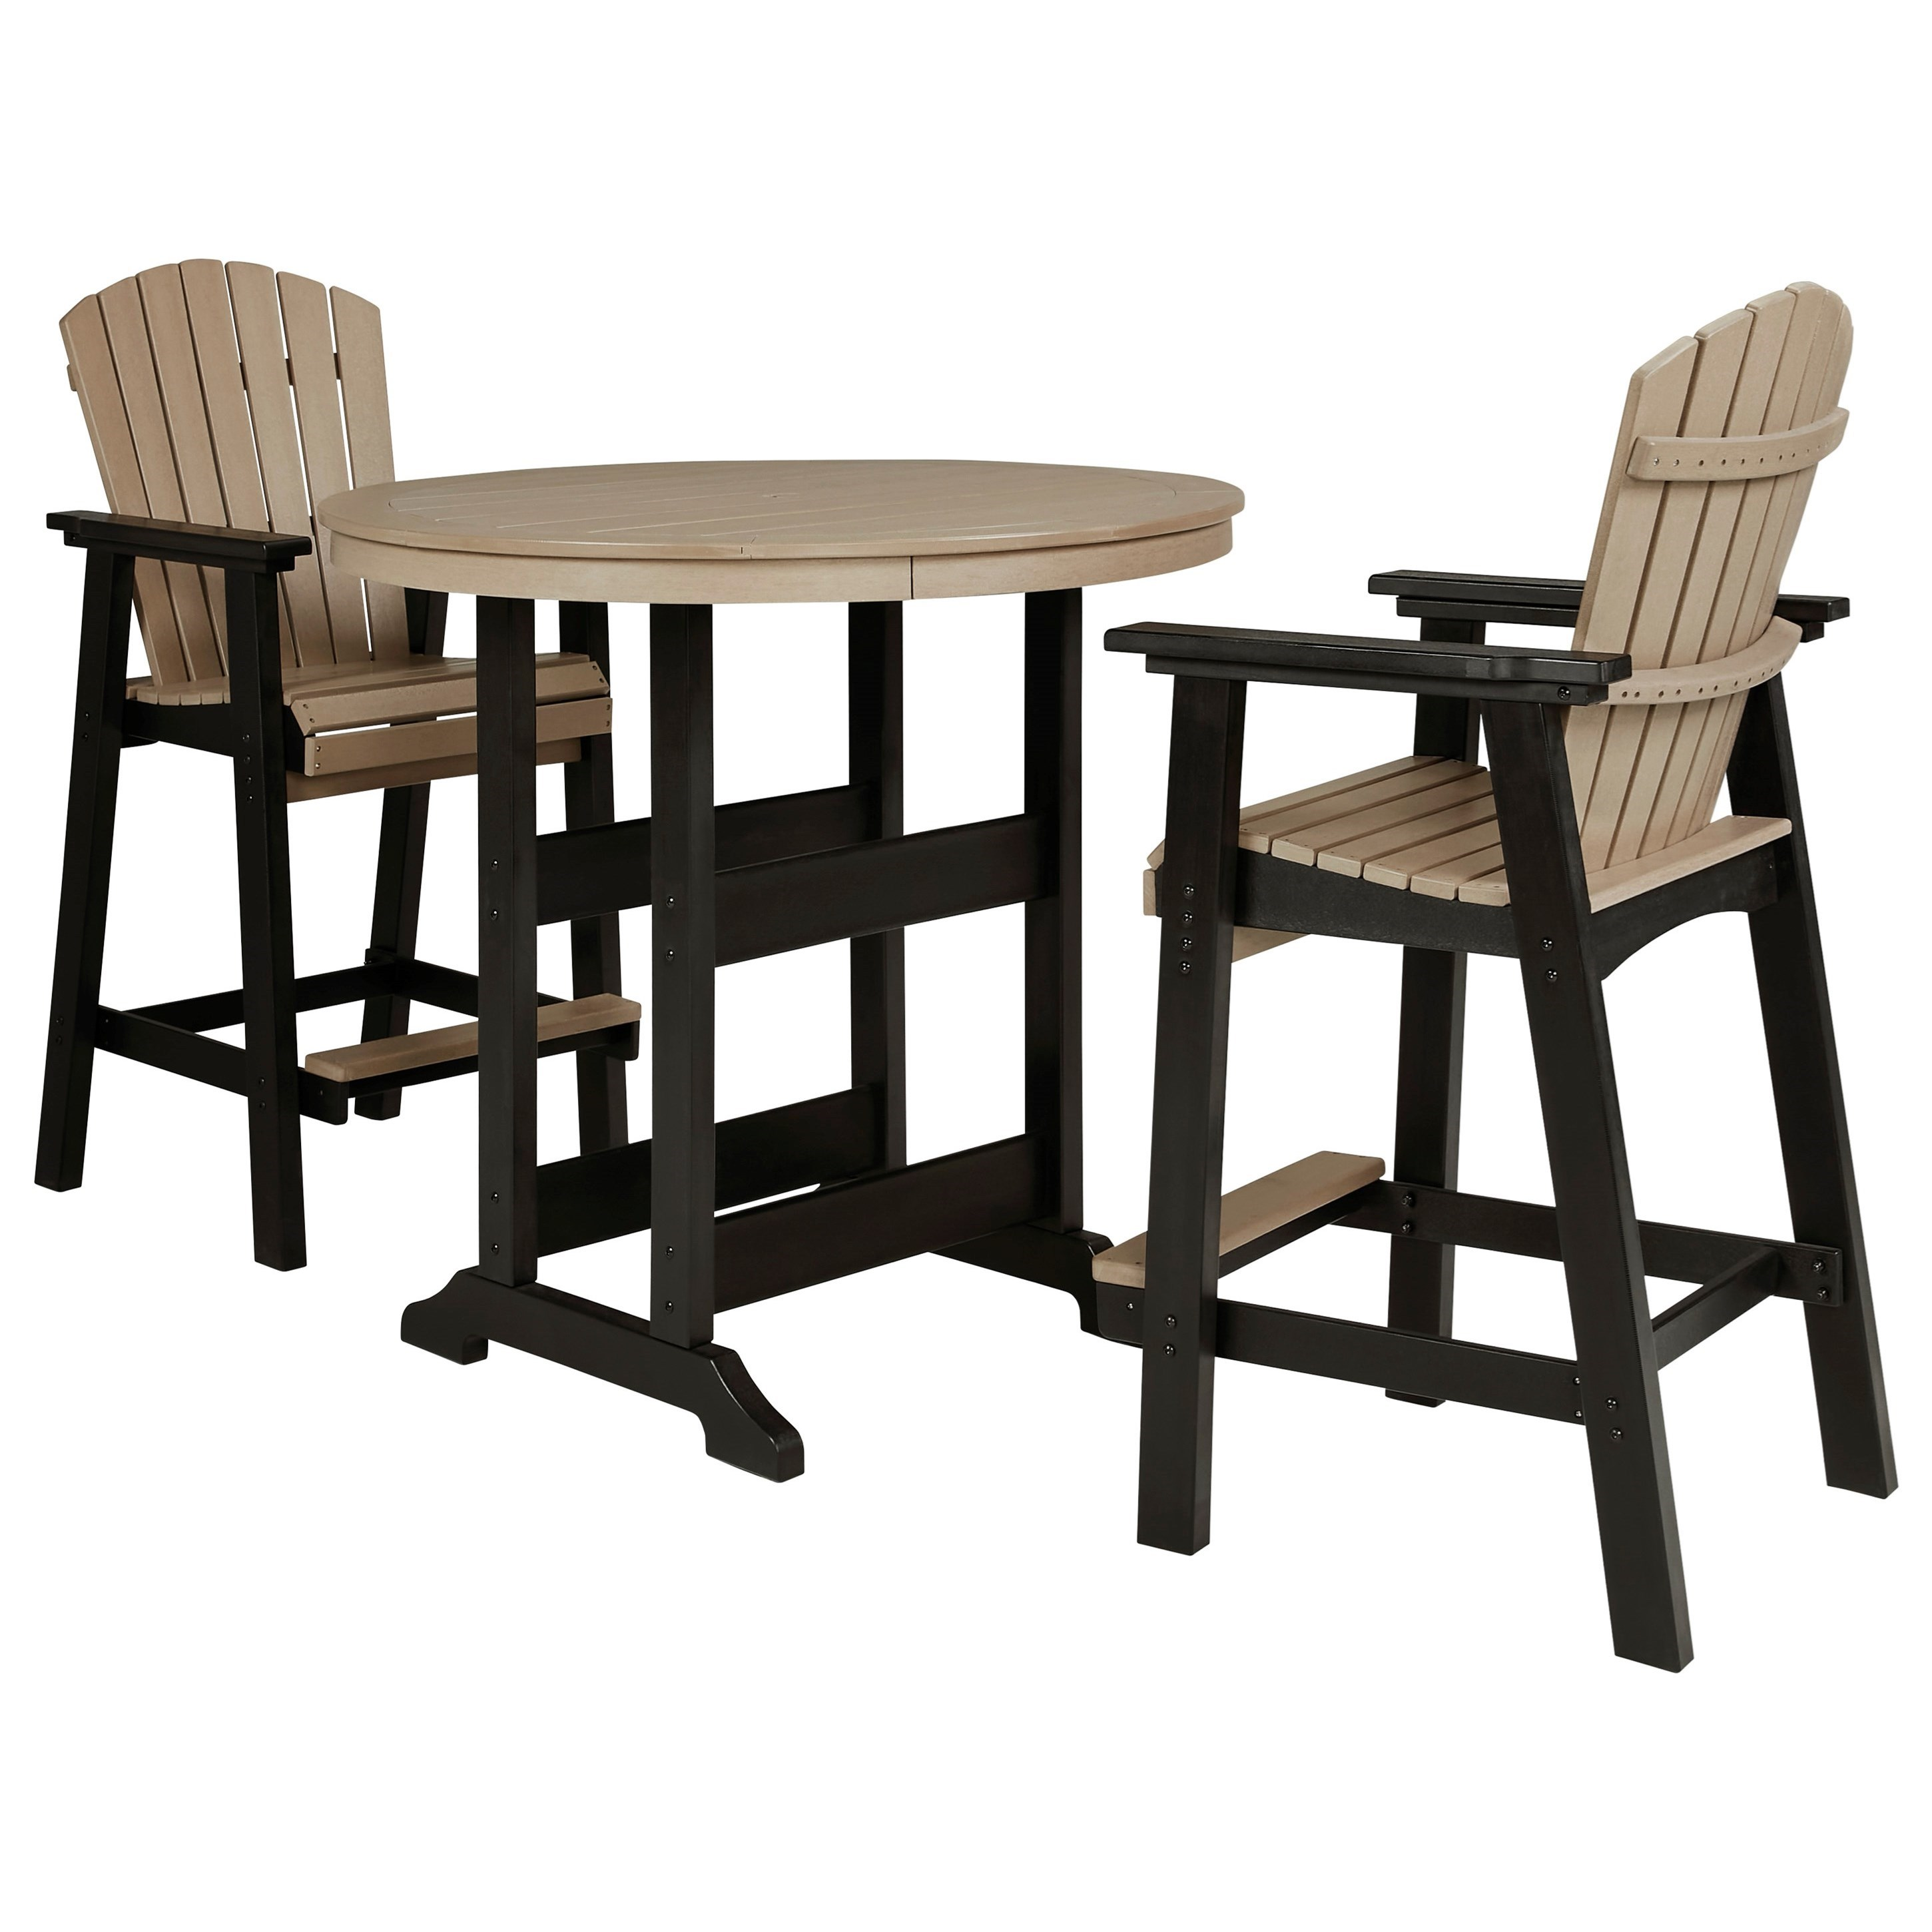 Fairen Trail 3-Piece Round Bar Table Set by Signature at Walker's Furniture